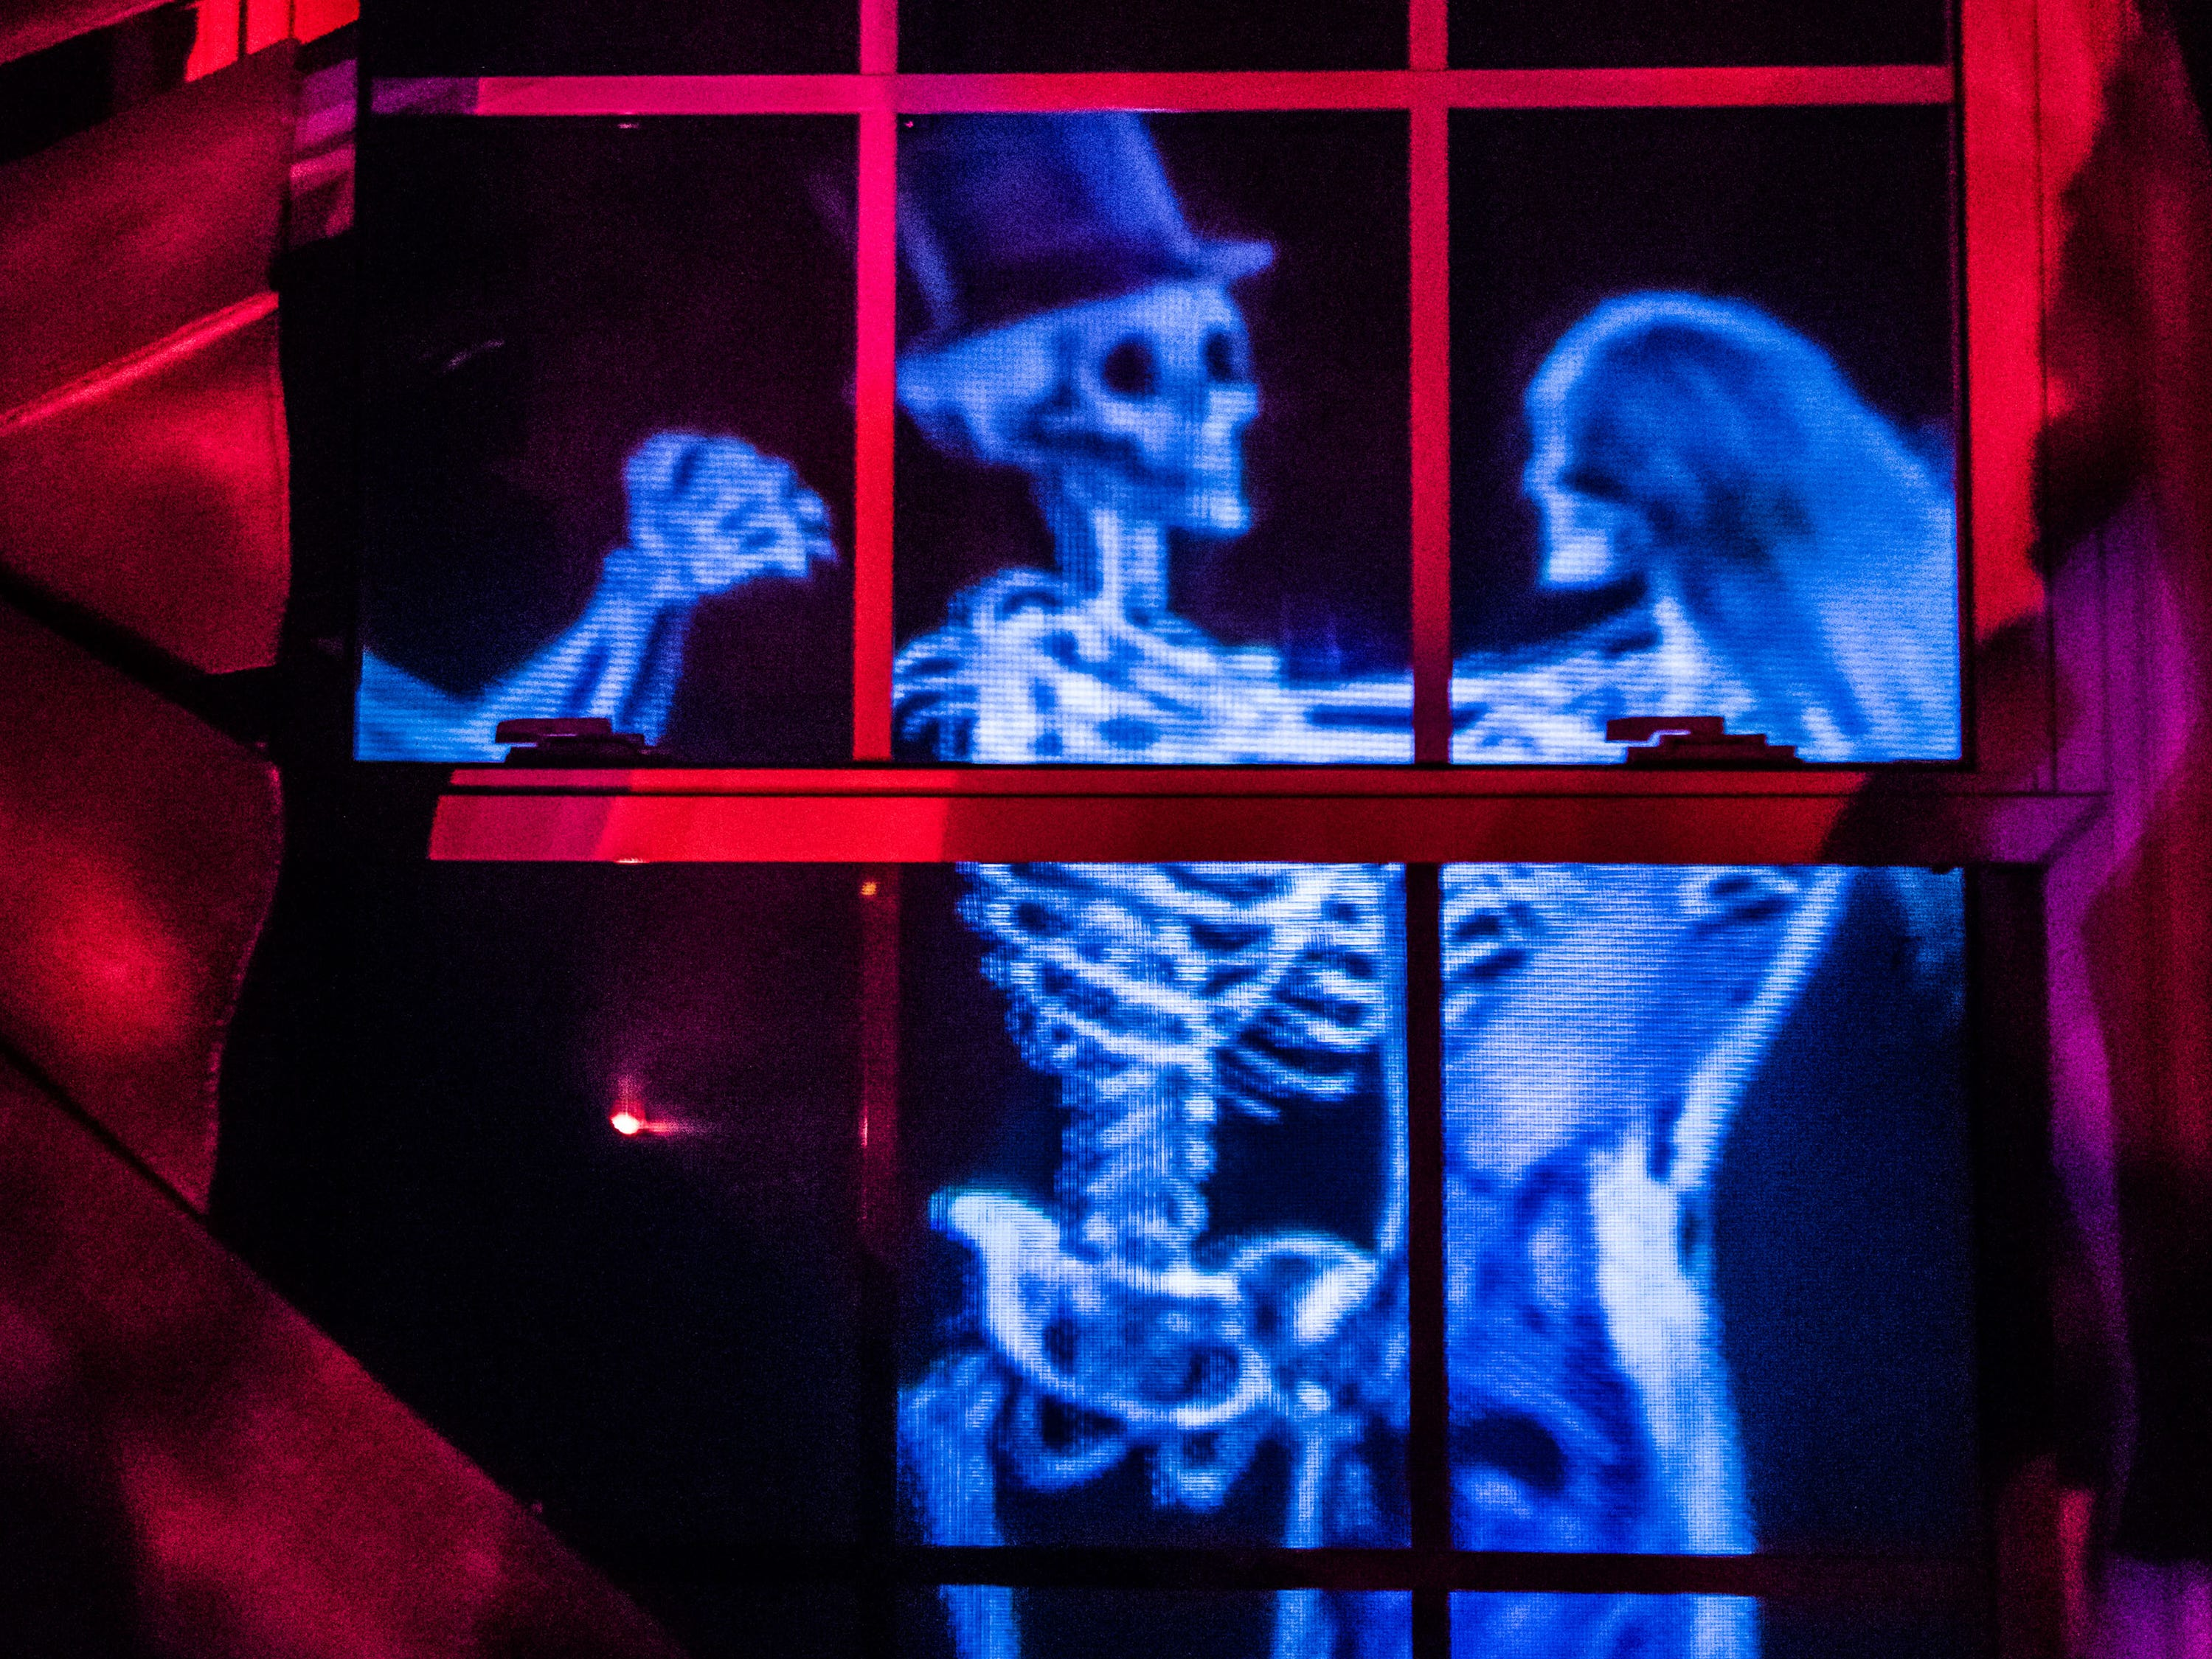 Animated skeletons are seen dancing around the inside of Bob Fuchs' haunted house at 18130 Midland Place in Brookfield on Monday, Oct. 22, 2018. The elaborate Halloween decorations draw a large crowd of trick-or-treaters each year.